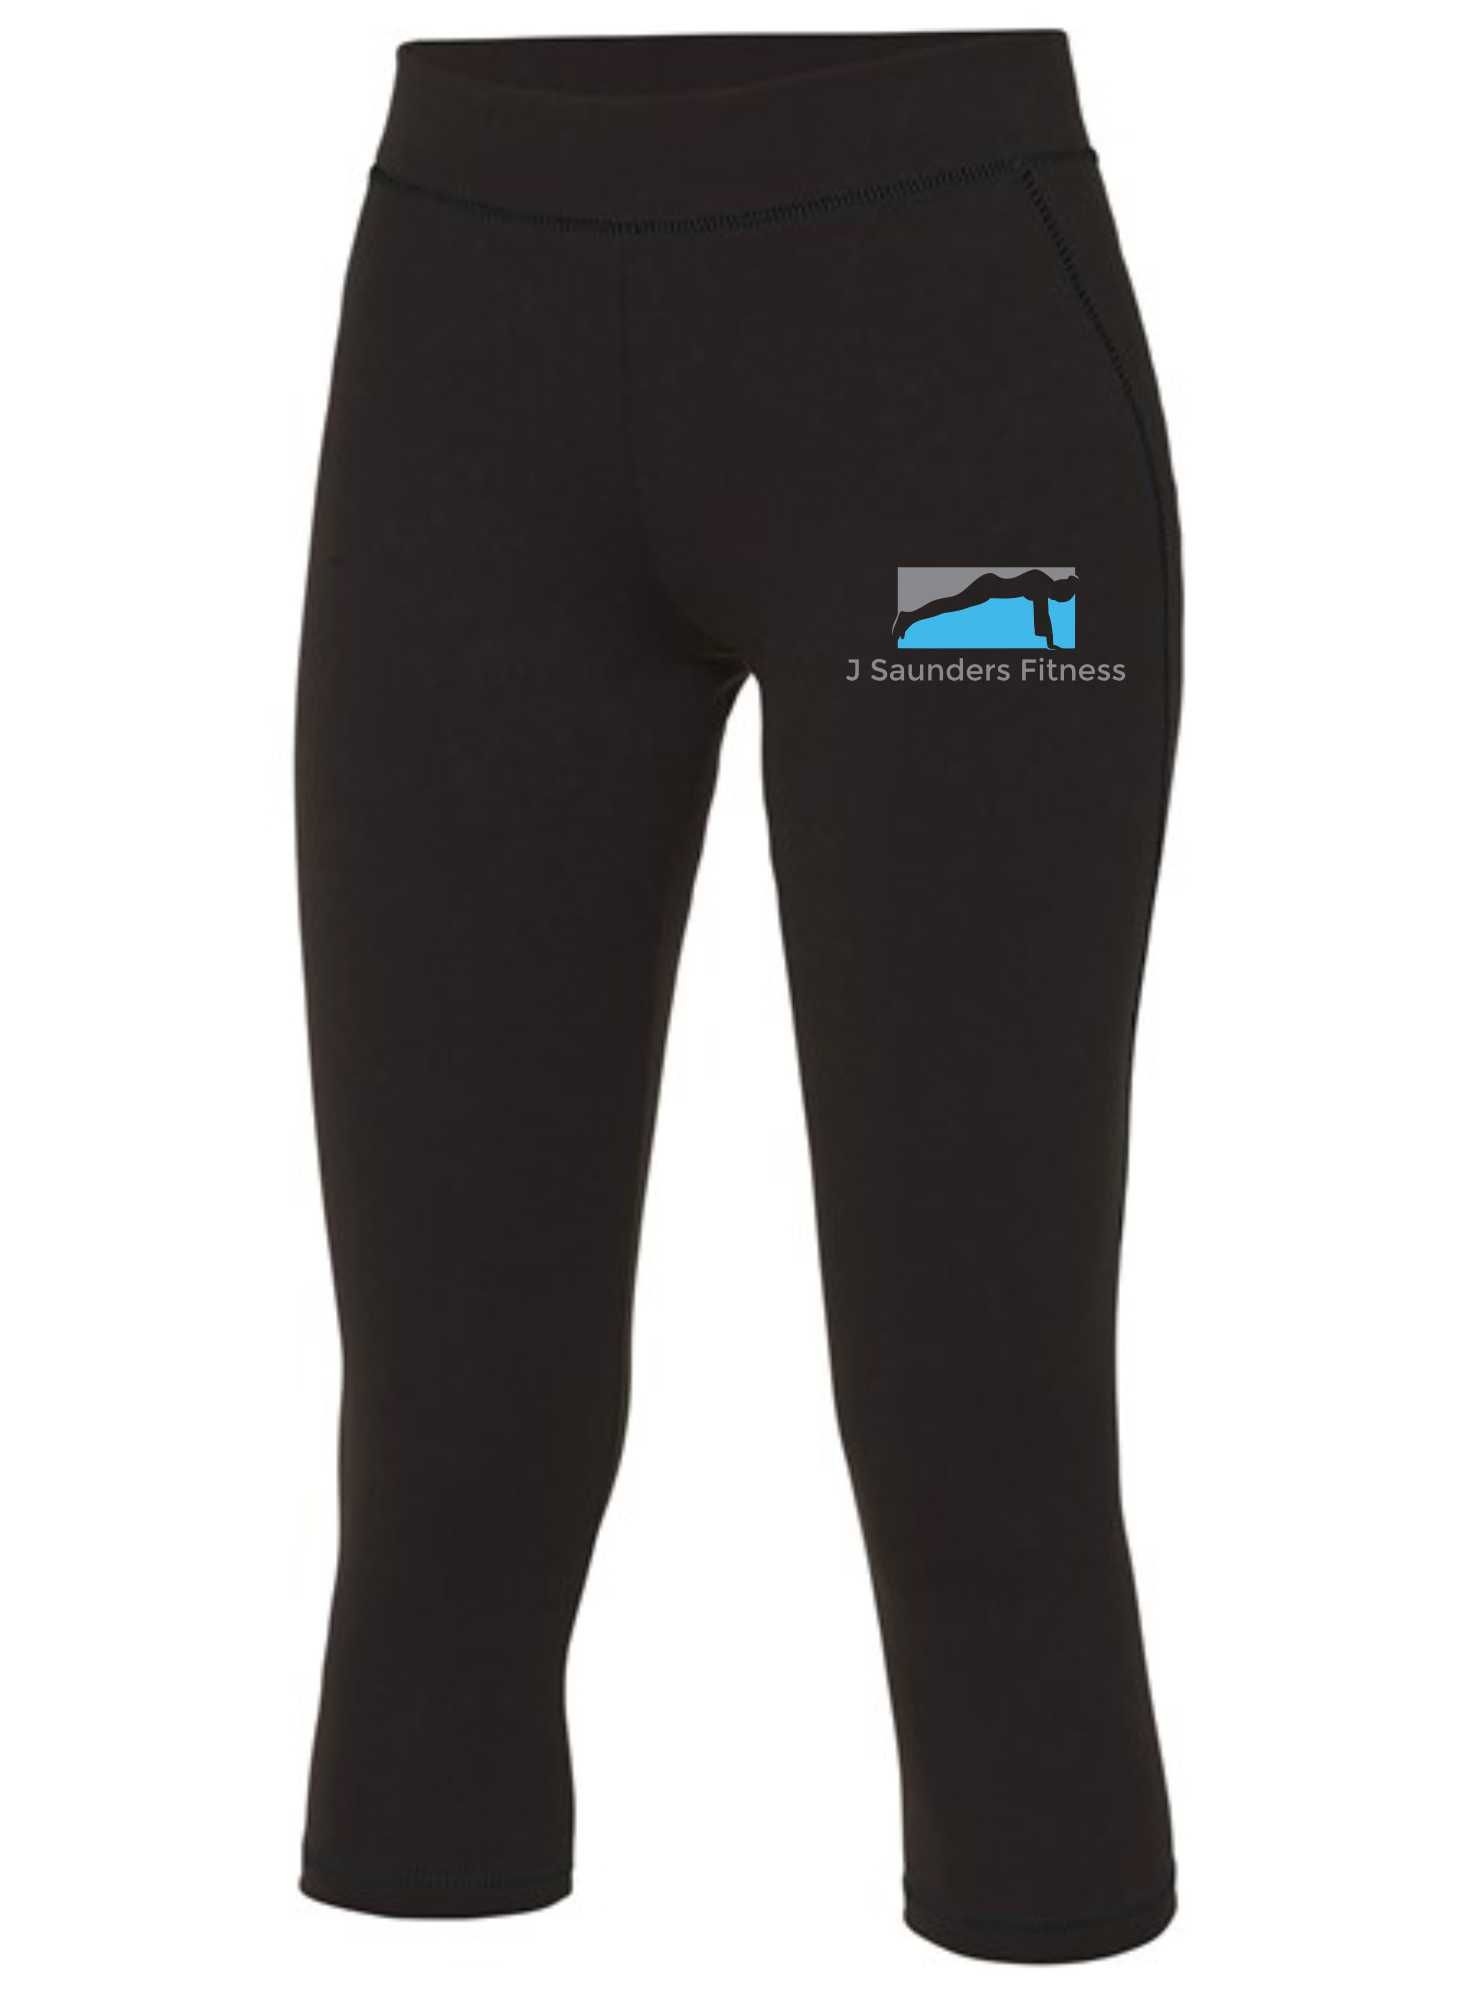 J Saunders Fitness- Sports 3/4 Leggings (Ladies)